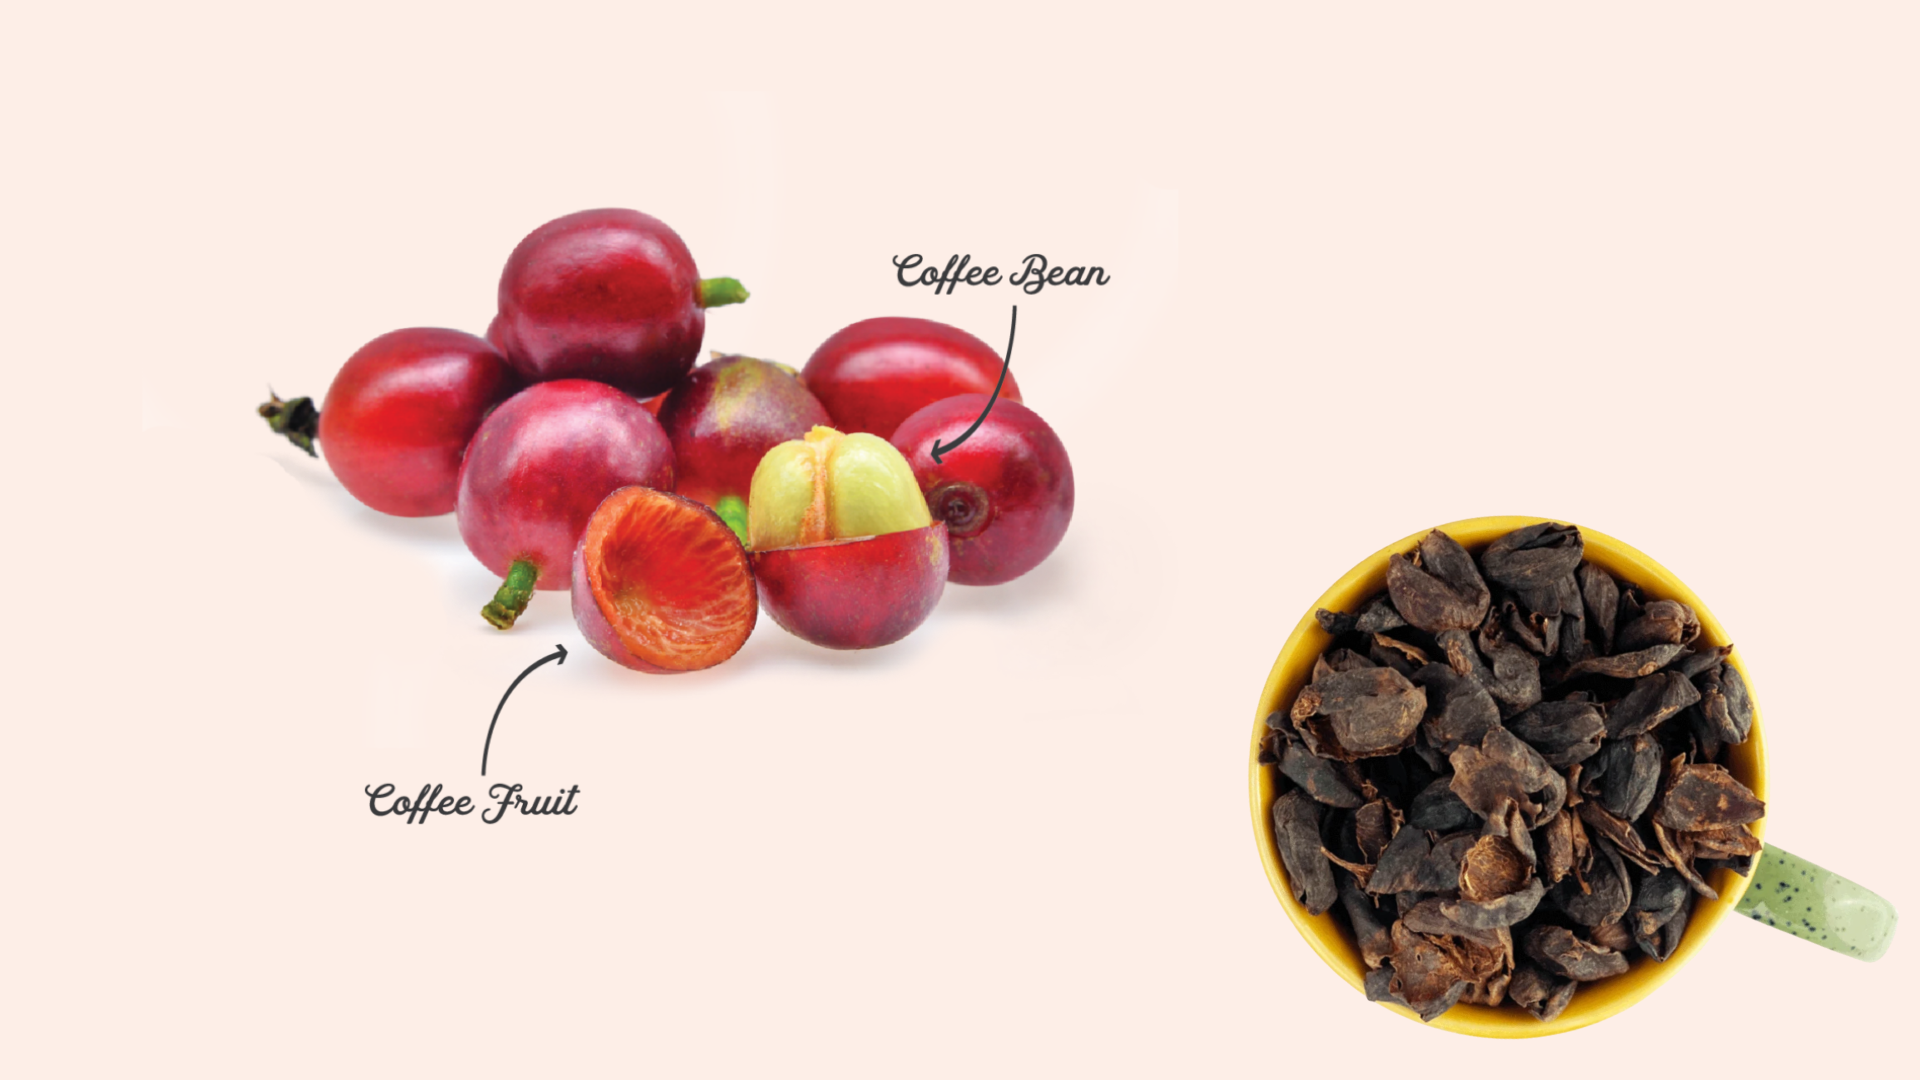 Tease Tea Coffee Cherry Tea Cascara